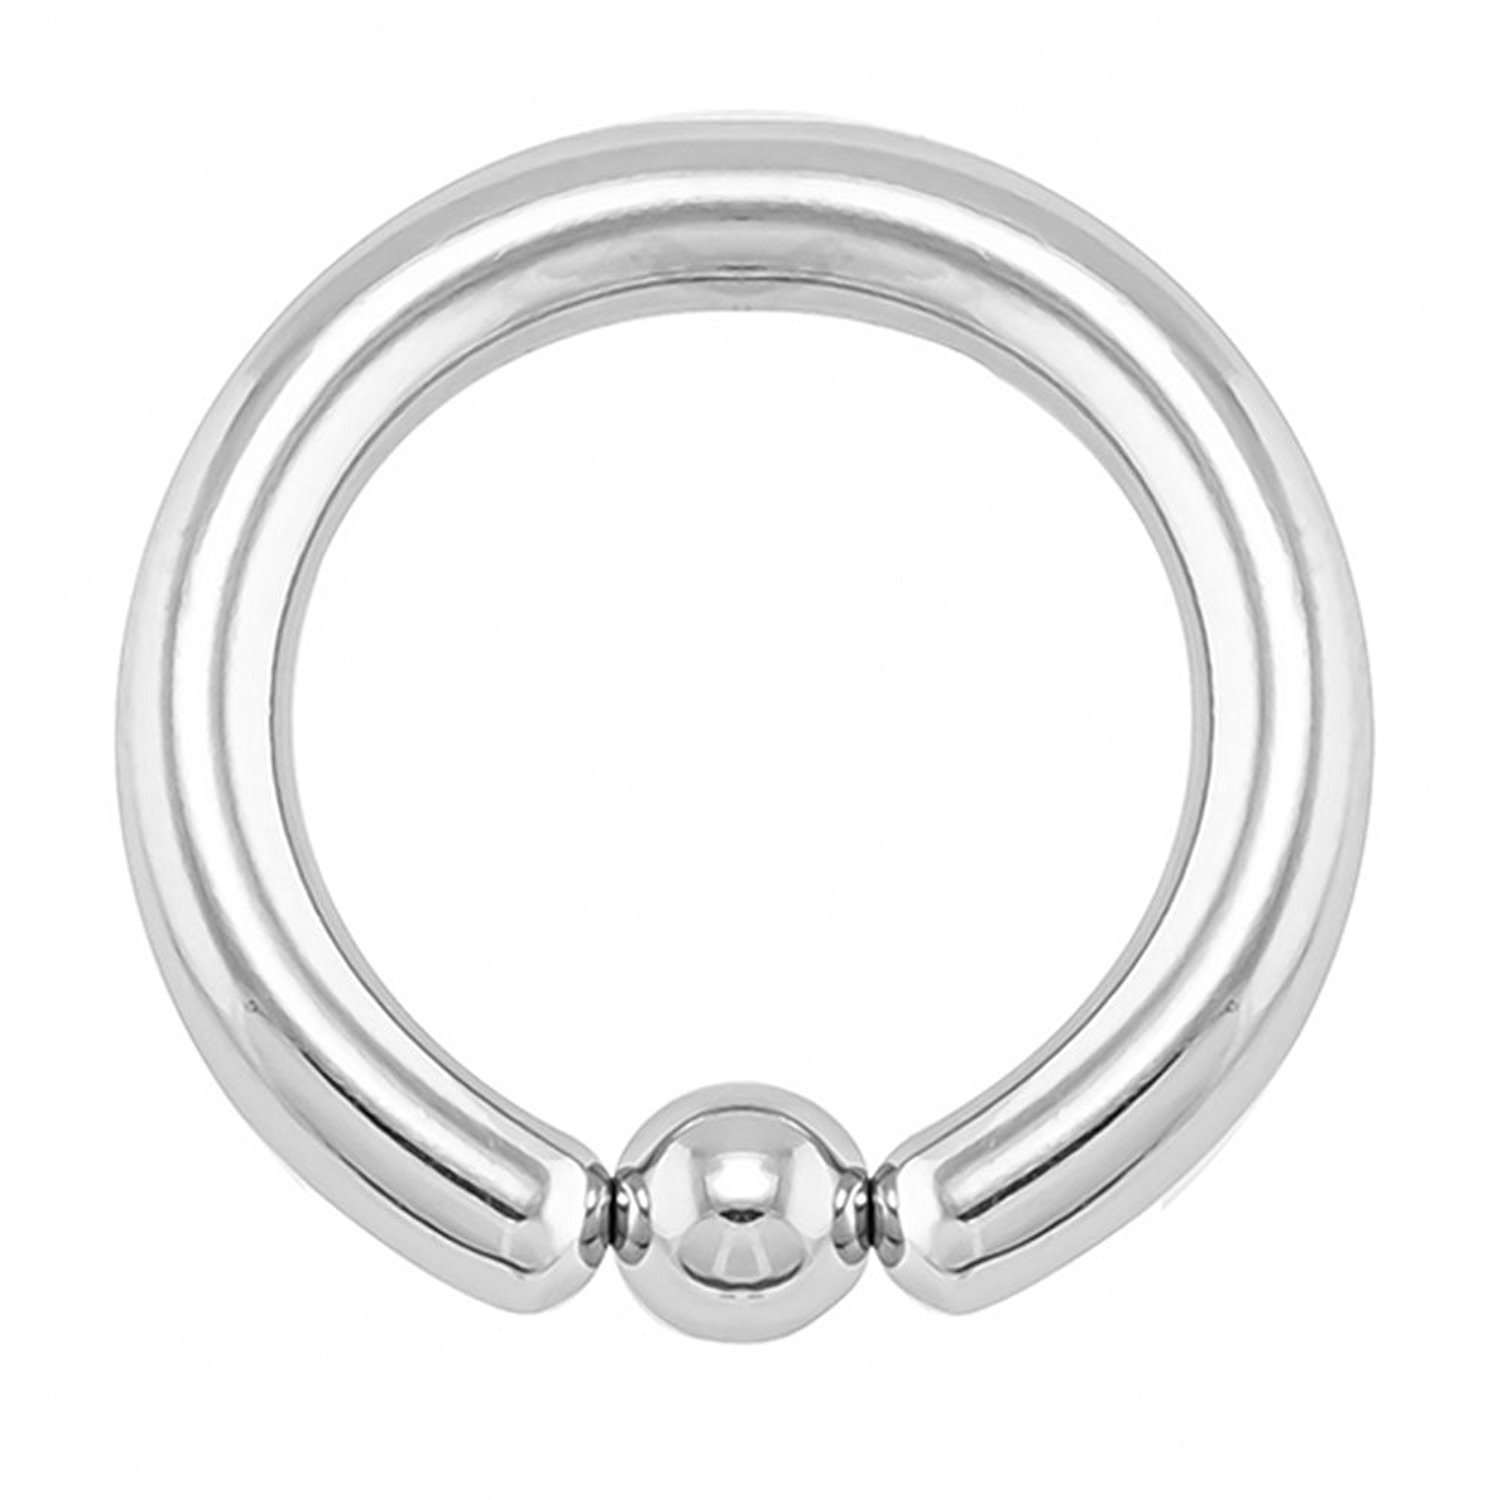 6G Colored Captive FifthCue Titanium IP Over 316L Surgical Implant Grade Steel Bead Ring 12G 4G 8G 2G 10G Sold Individually